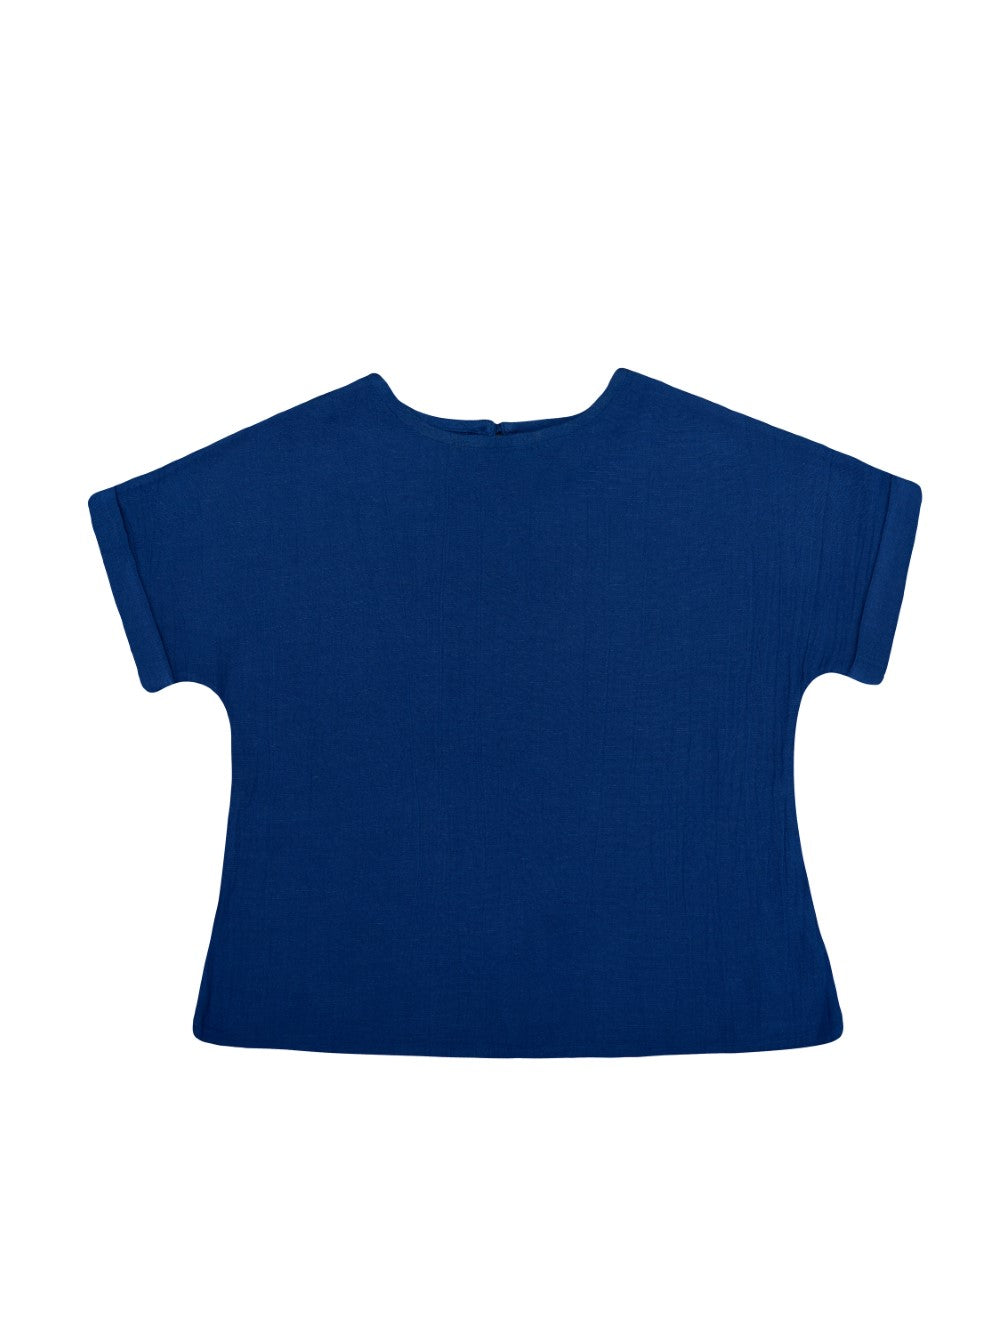 Blue Light Weight Top